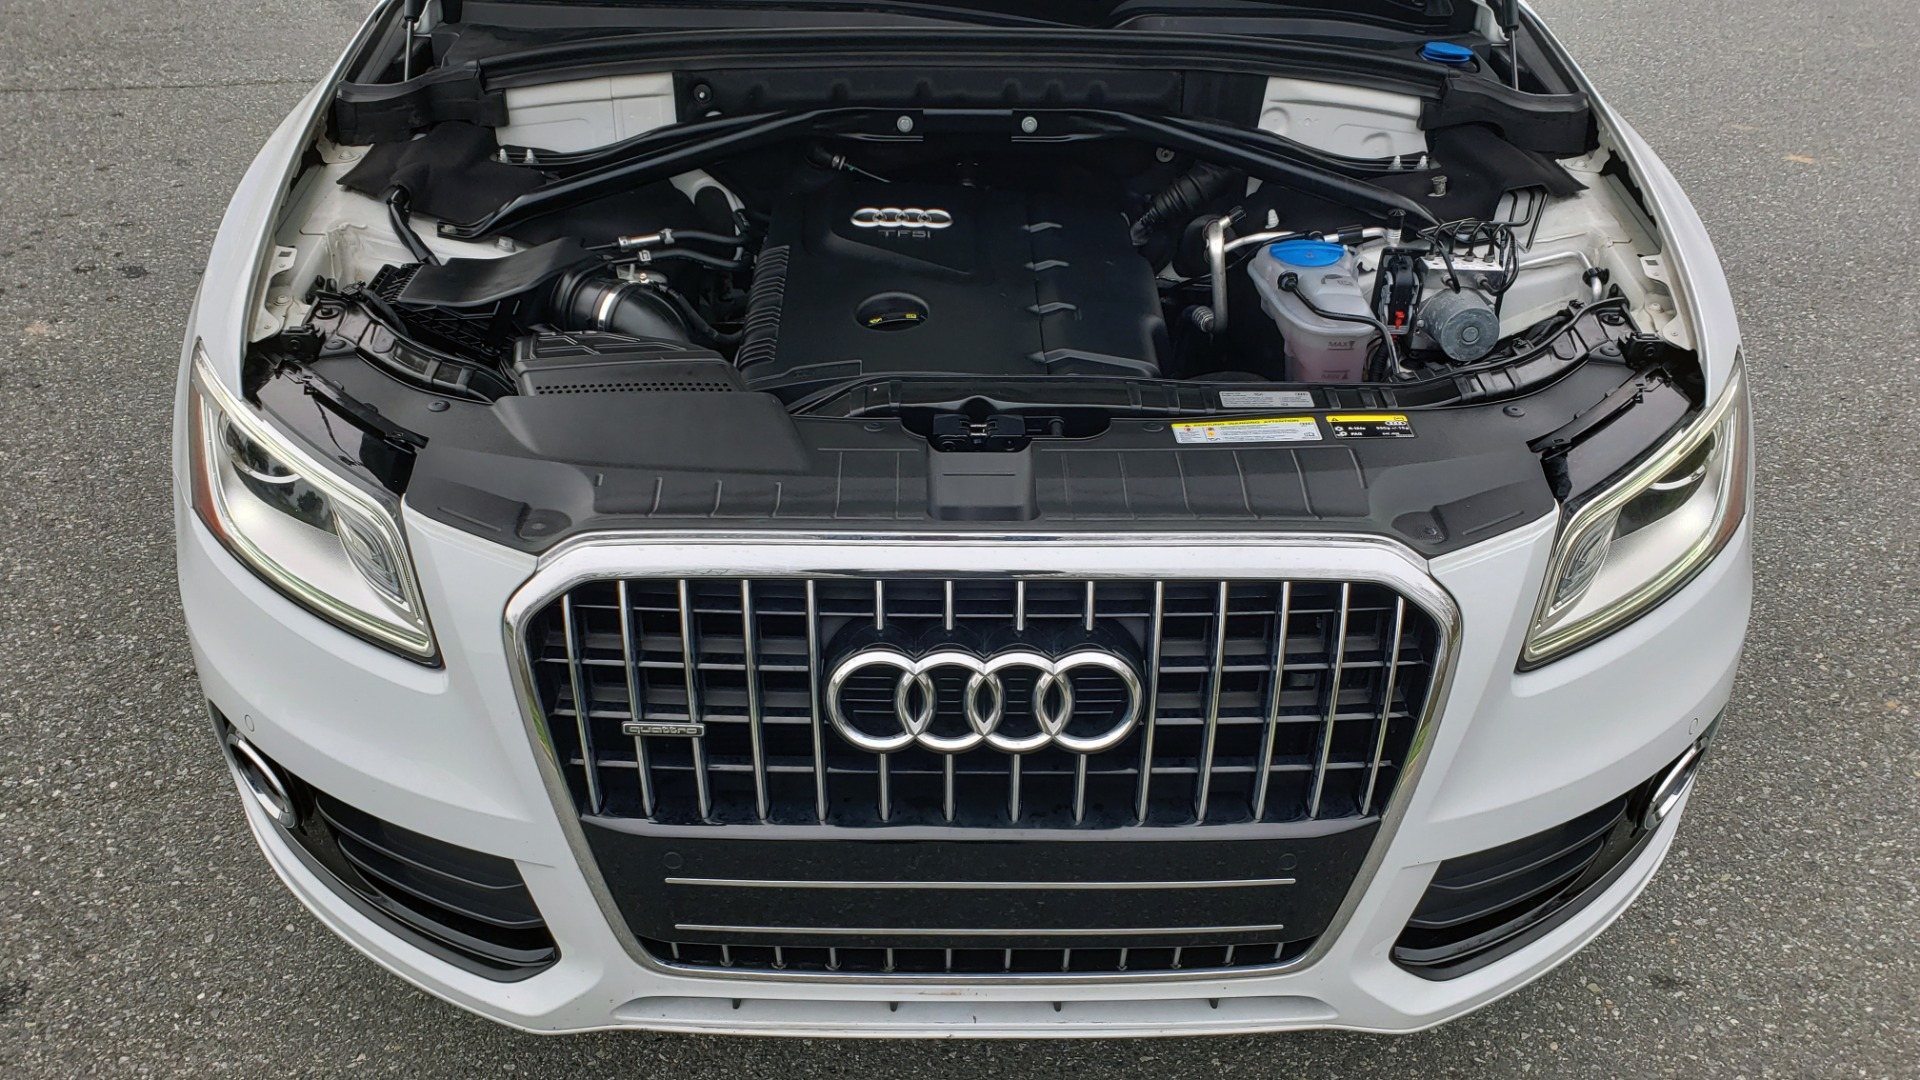 Used 2017 Audi Q5 PREMIUM PLUS / TECH / NAV / PANO-ROOF / B&O SND / REARVIEW for sale Sold at Formula Imports in Charlotte NC 28227 11